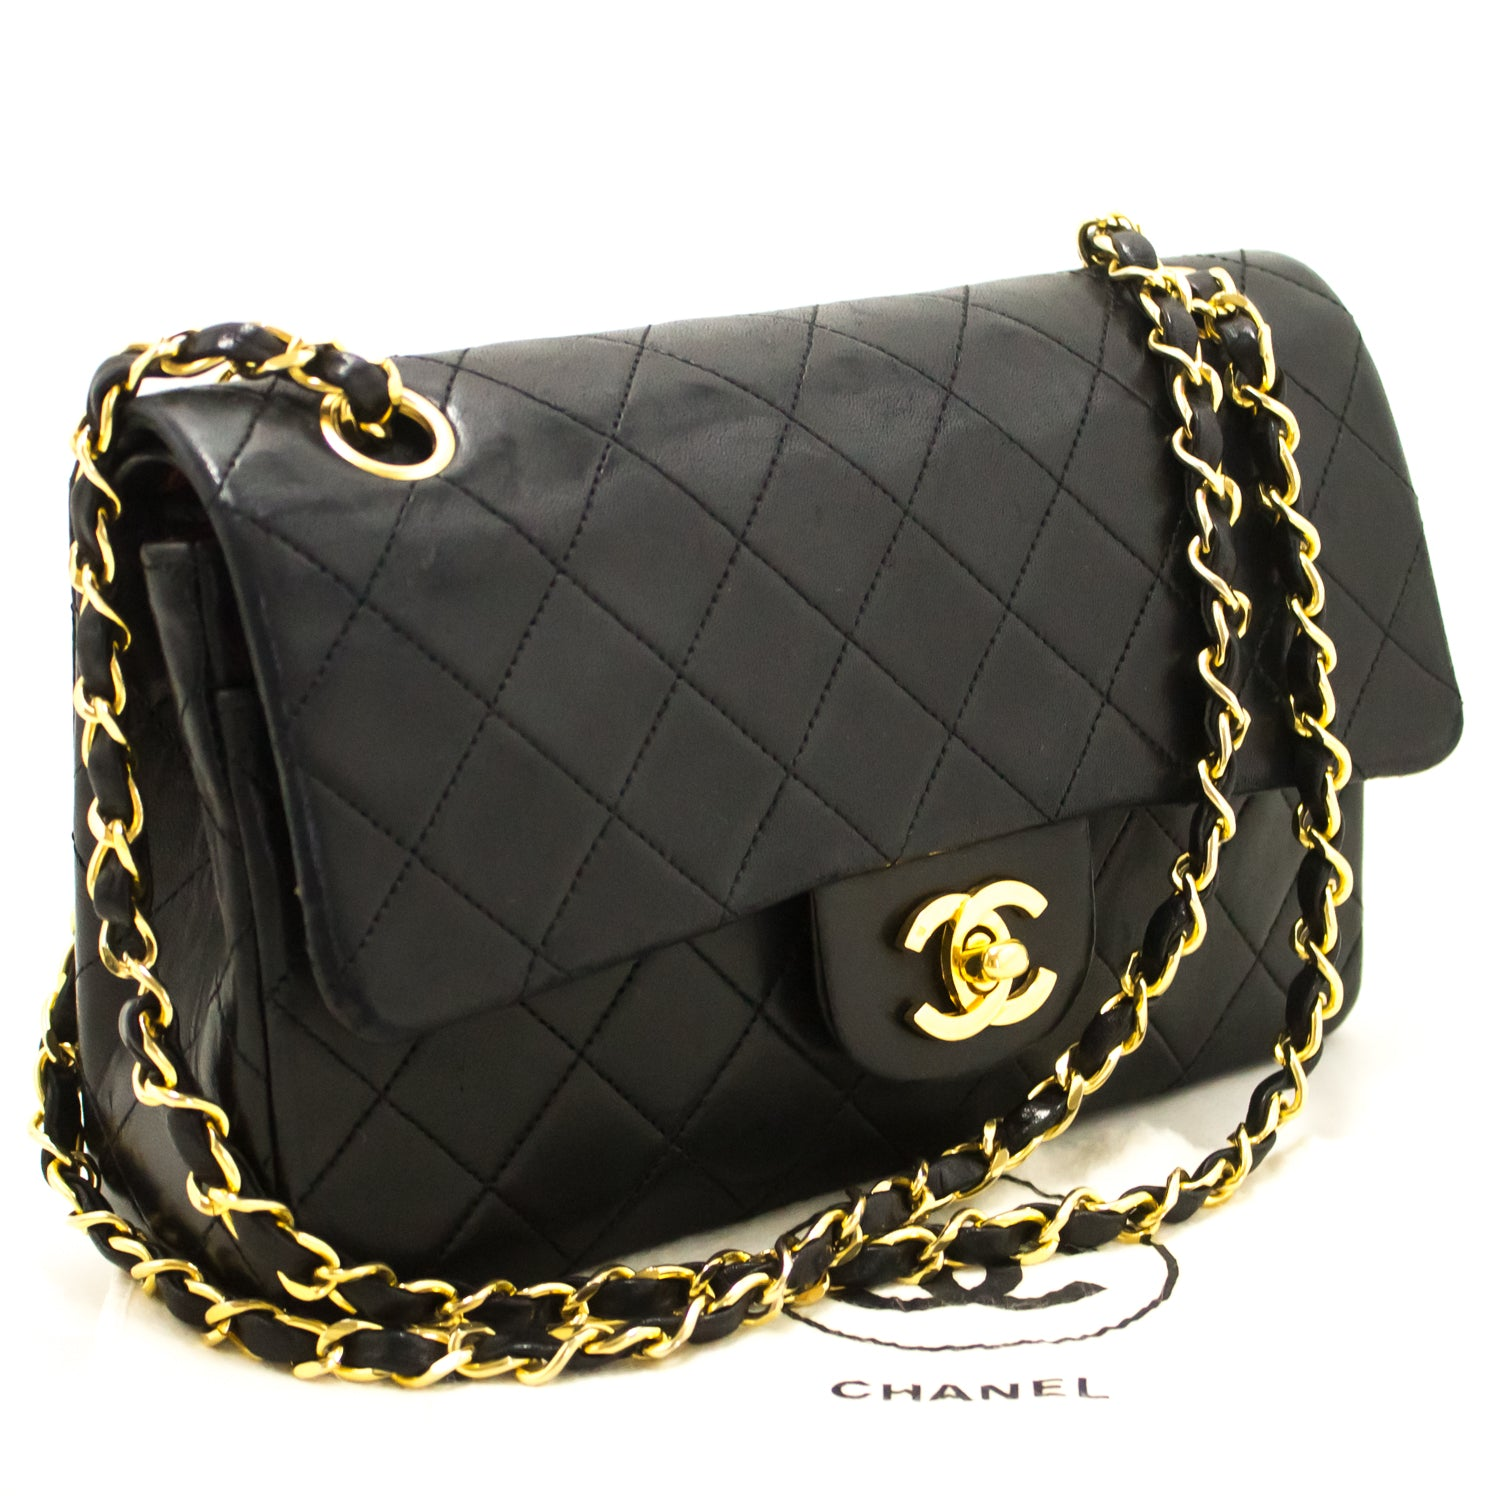 ... CHANEL Small Double Flap Chain Shoulder Bag Black Quilted Lambskin j57  ... c7cb277dbb107